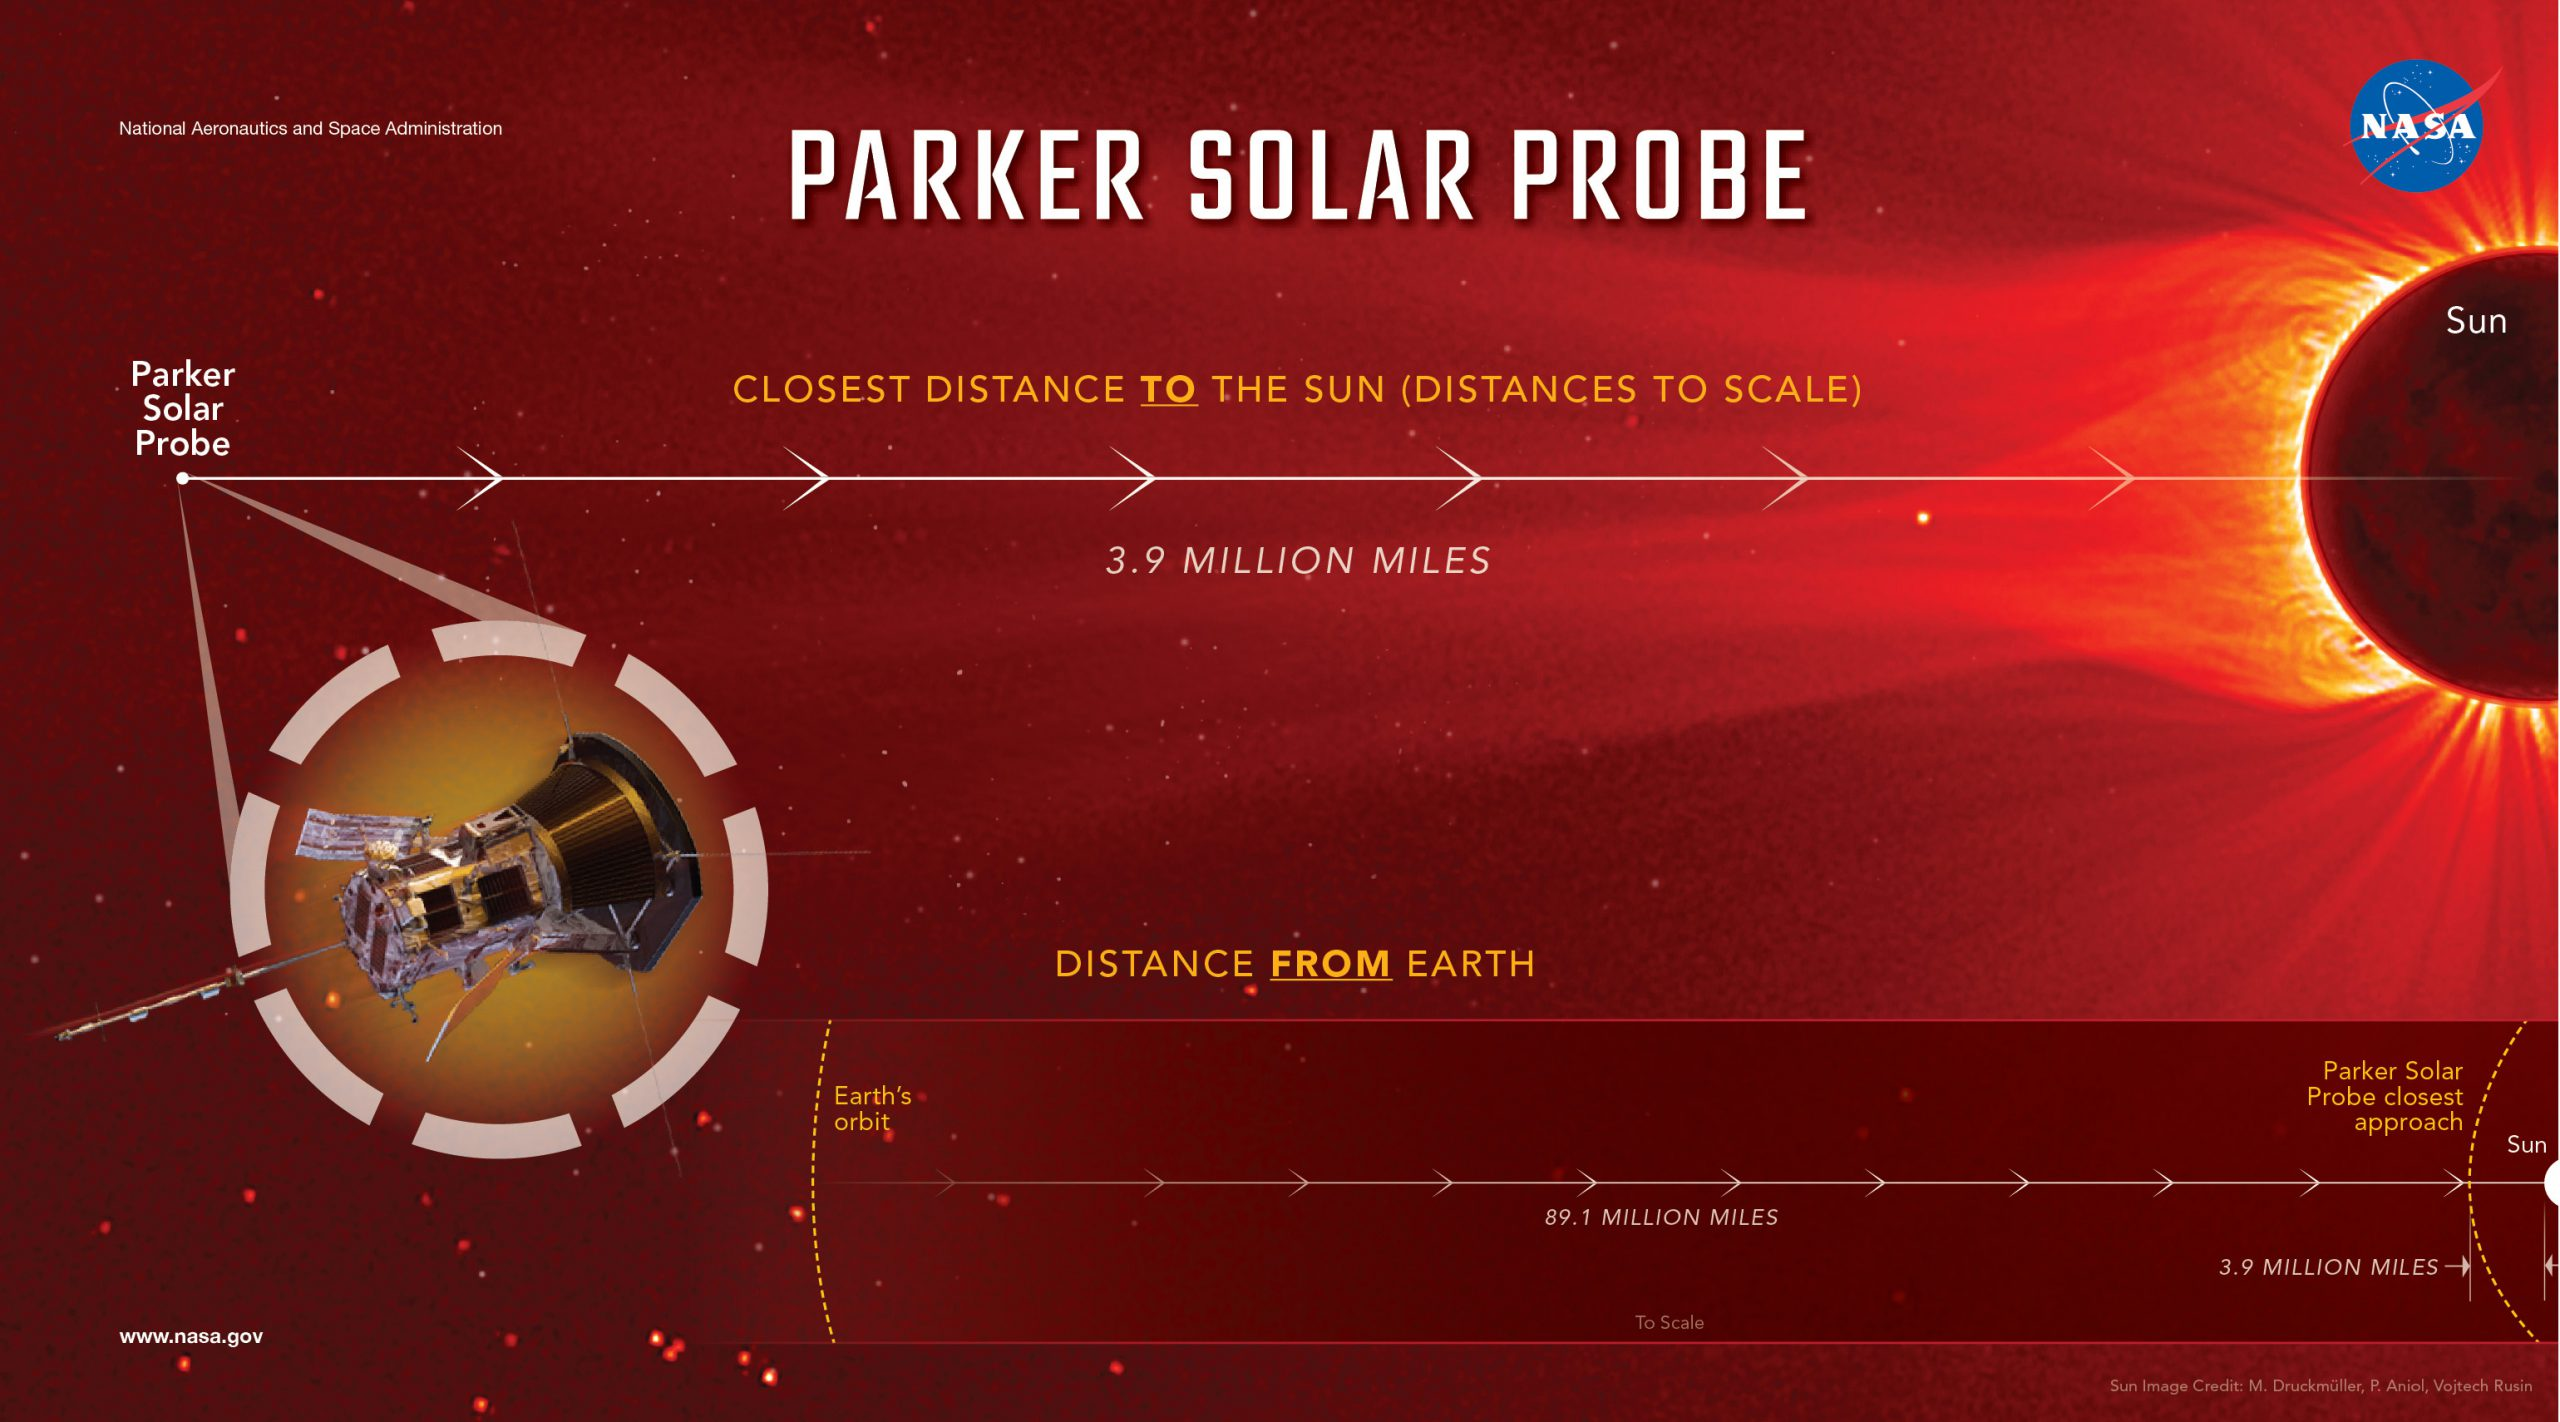 On the final three orbits, Parker Solar Probe will fly to within 3.9 million miles (6.2 million kilometers) of the Sun's surface—more than seven times closer than the current record holder for a close solar pass, the Helios 2 spacecraft, which came within 27 million miles (43 million kilometers) in 1976.